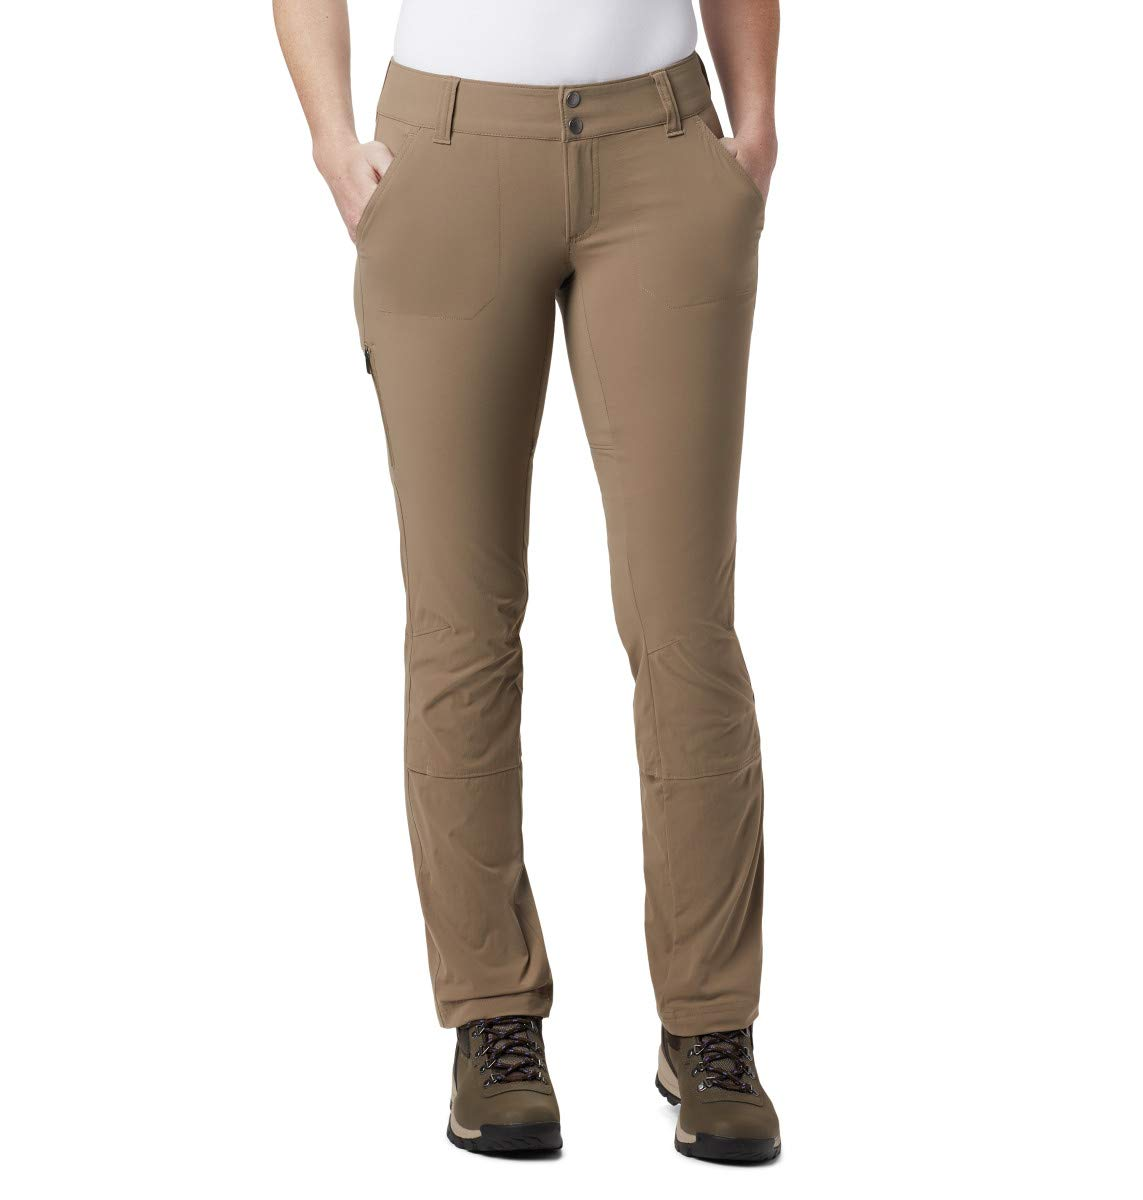 Columbia Wohommes Saturday Trail Pant, Truffle, 4 Regular